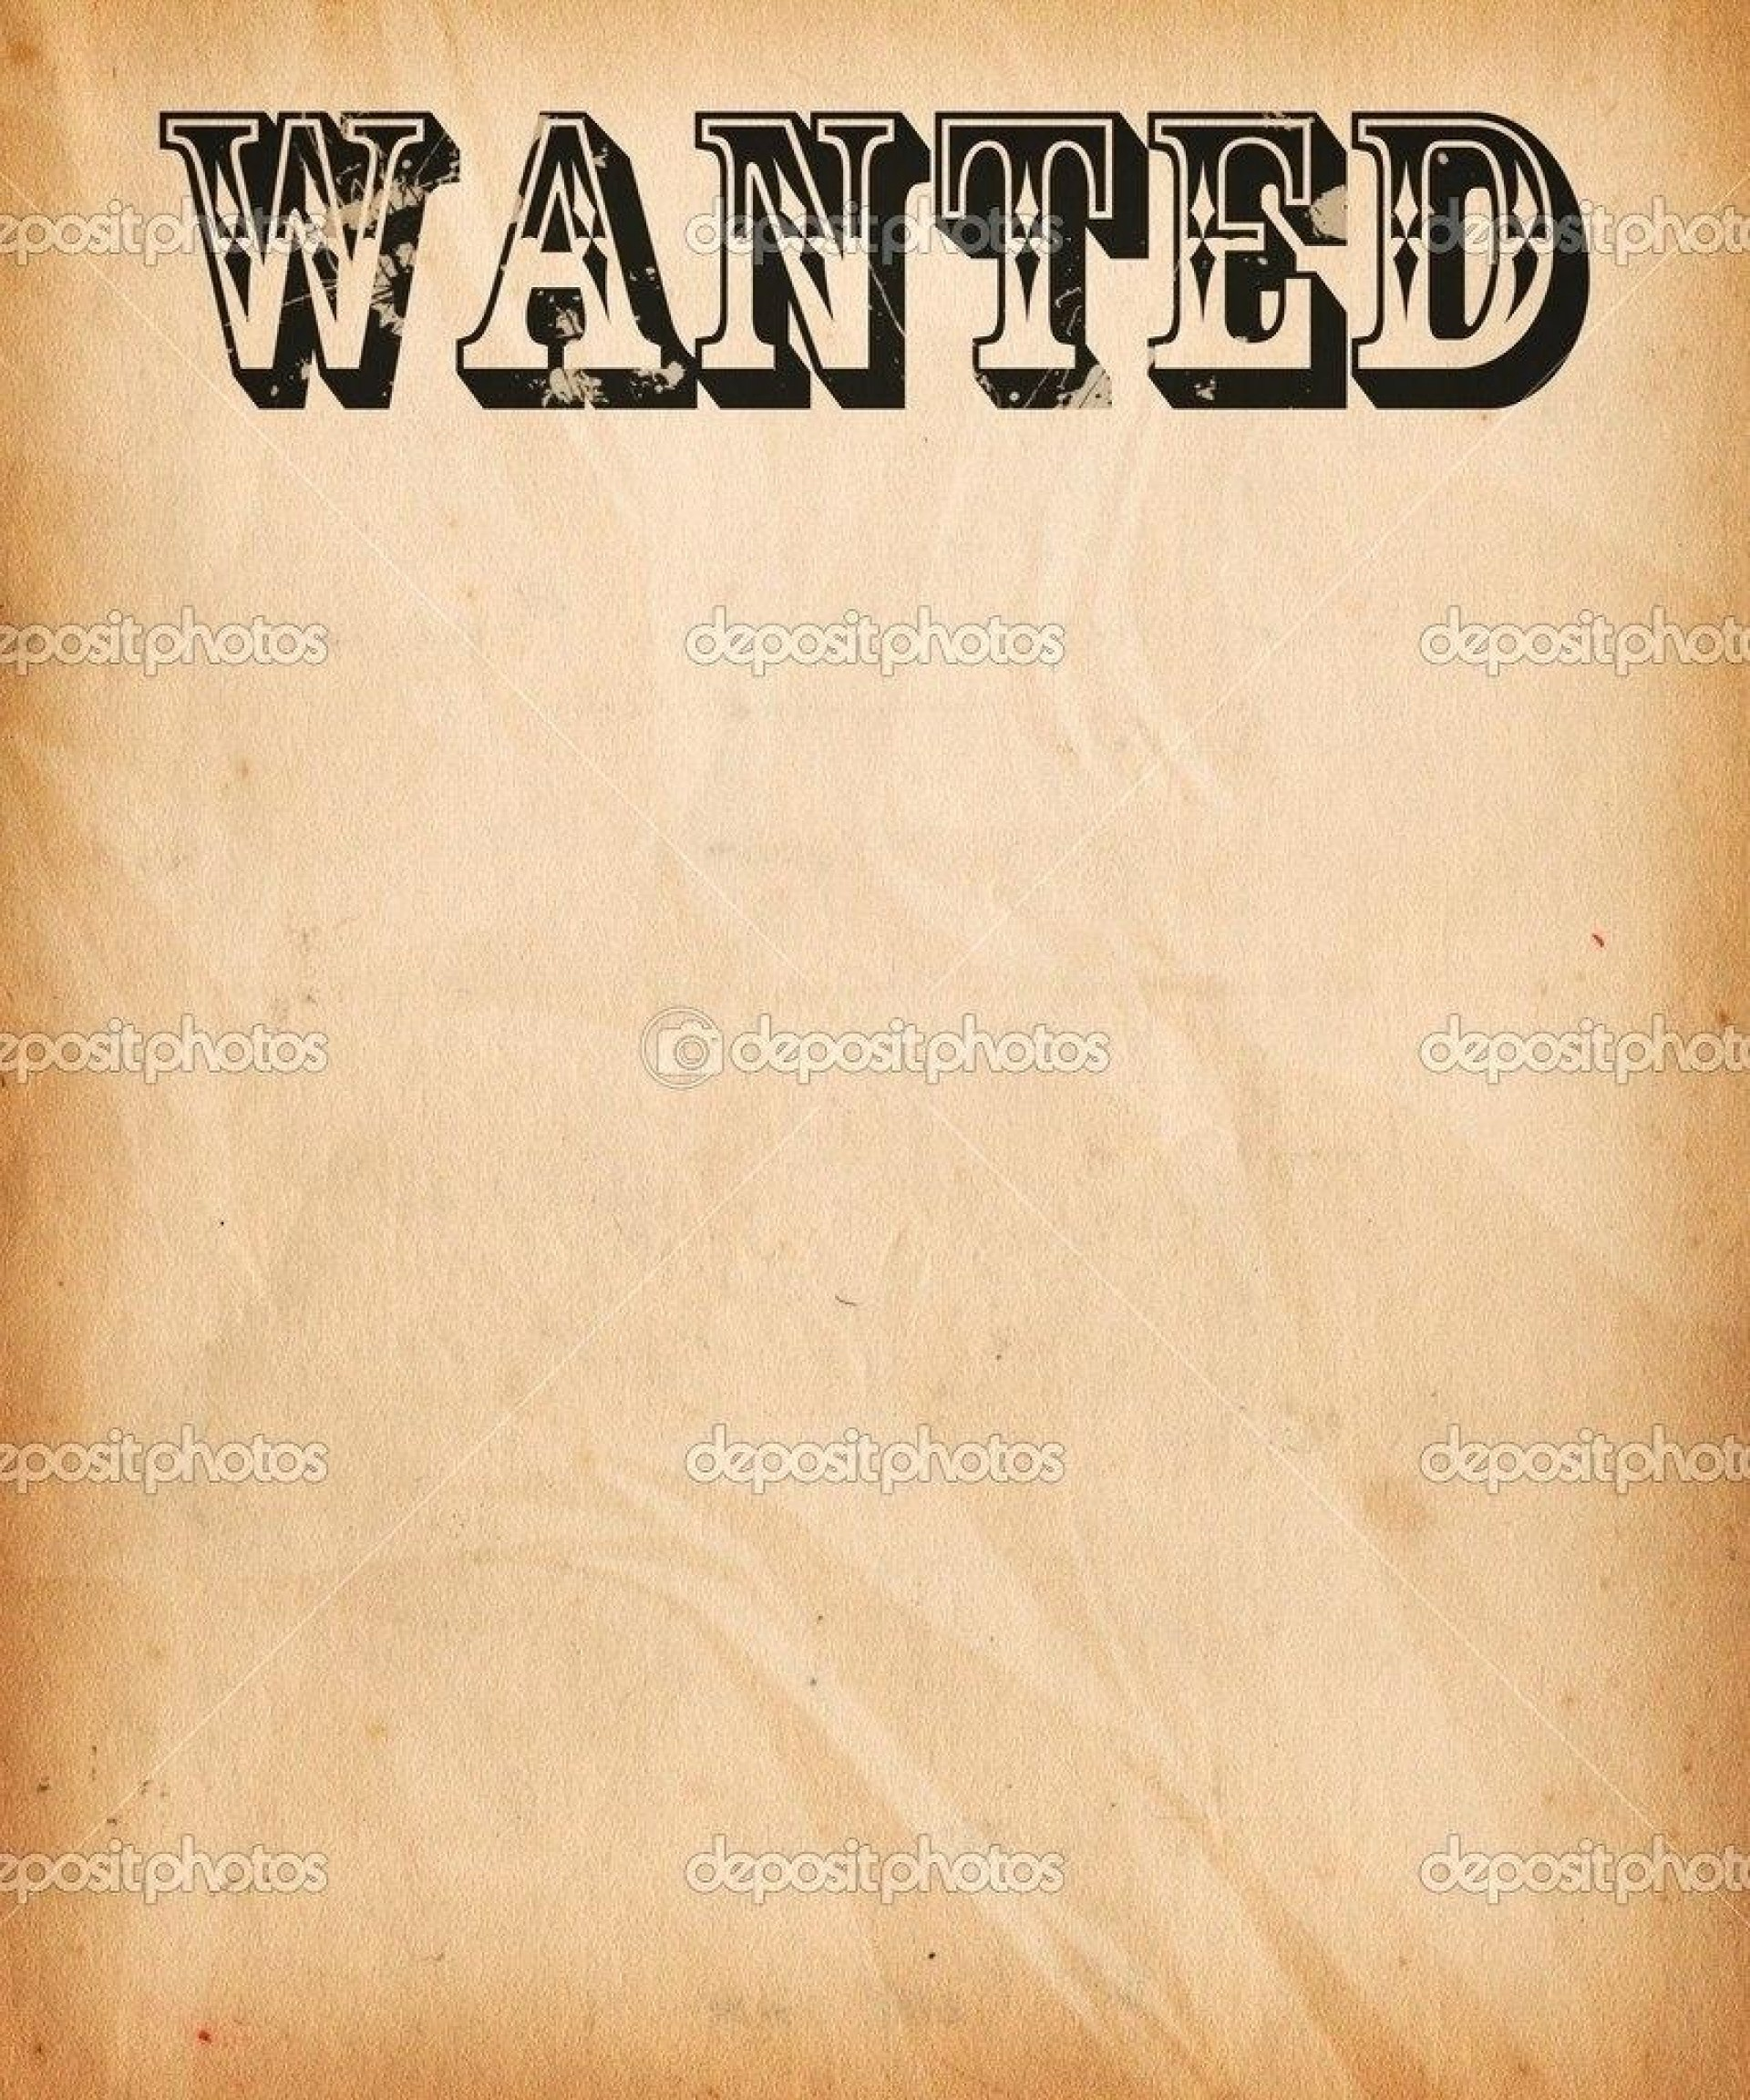 014 Free Wanted Poster Template Printable Lovely Invitation Flyer - Wanted Poster Printable Free